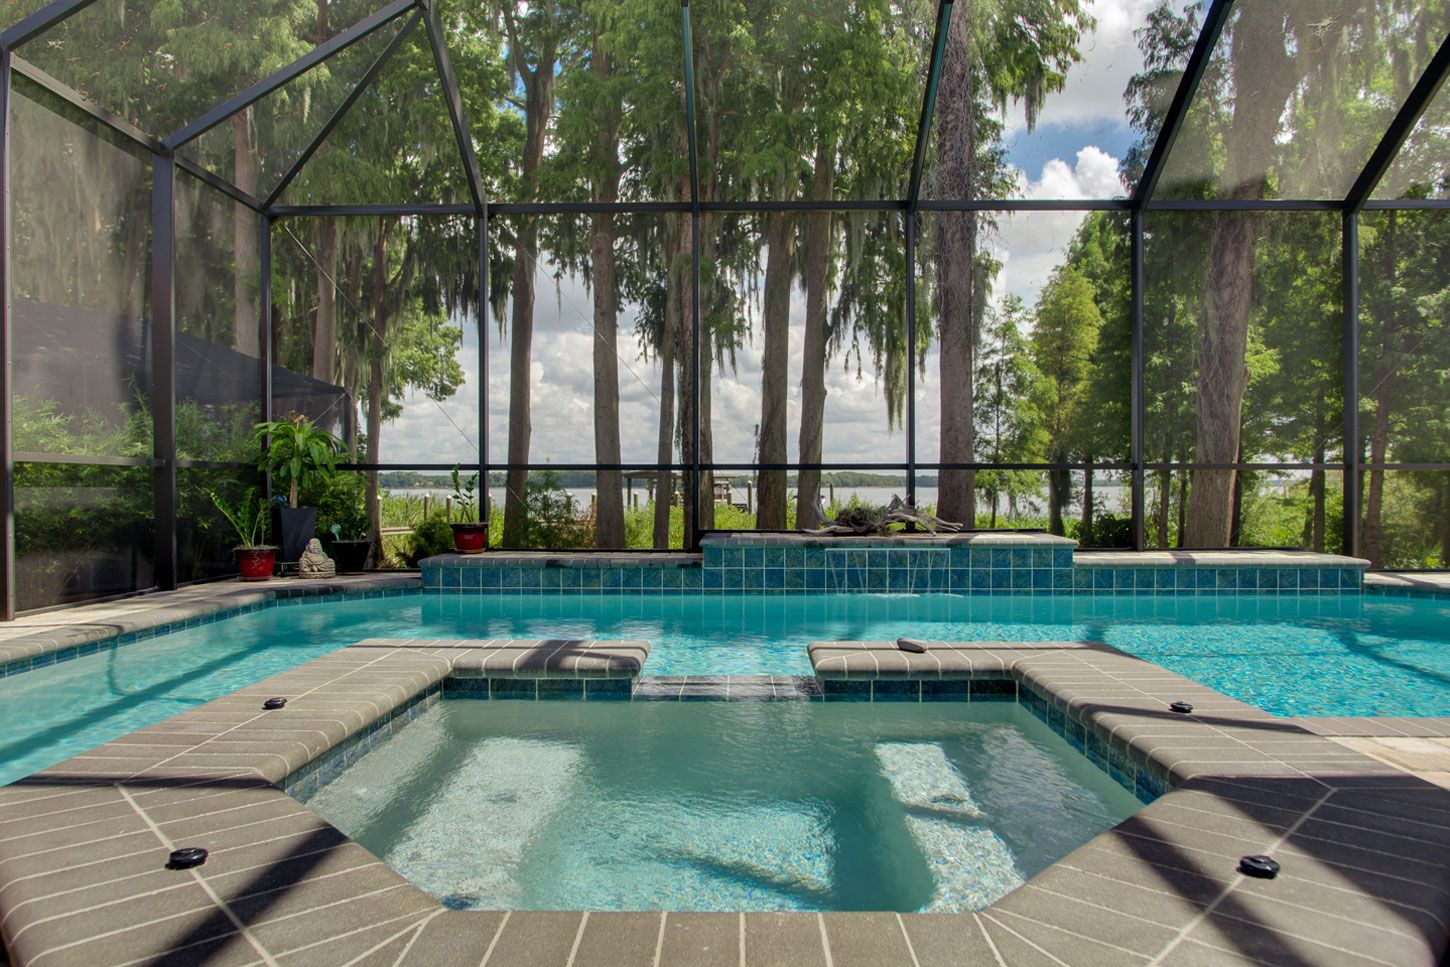 Pin by Homes by Southern Image on Pools & Outside Living ... on Southern Pools And Outdoor Living id=62043